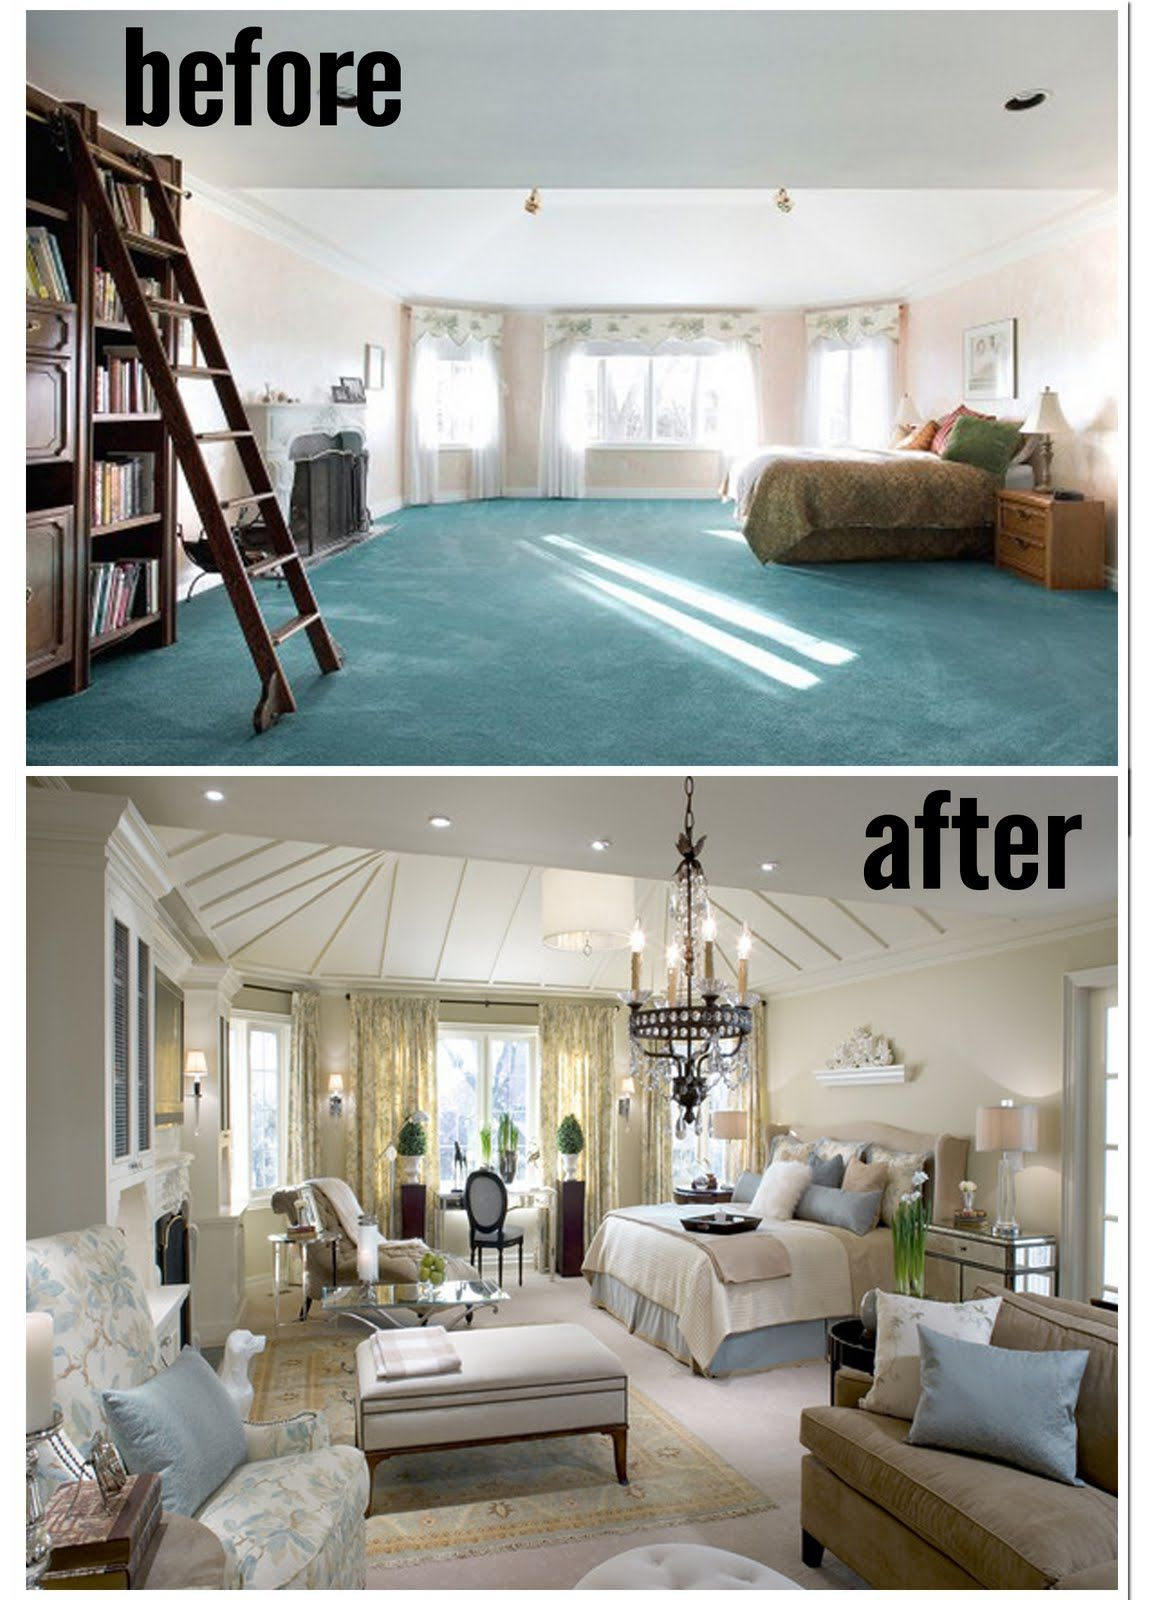 one of my most favorite transformations from my favorite interior designer amazing master bedrooms by candice olson before and afters